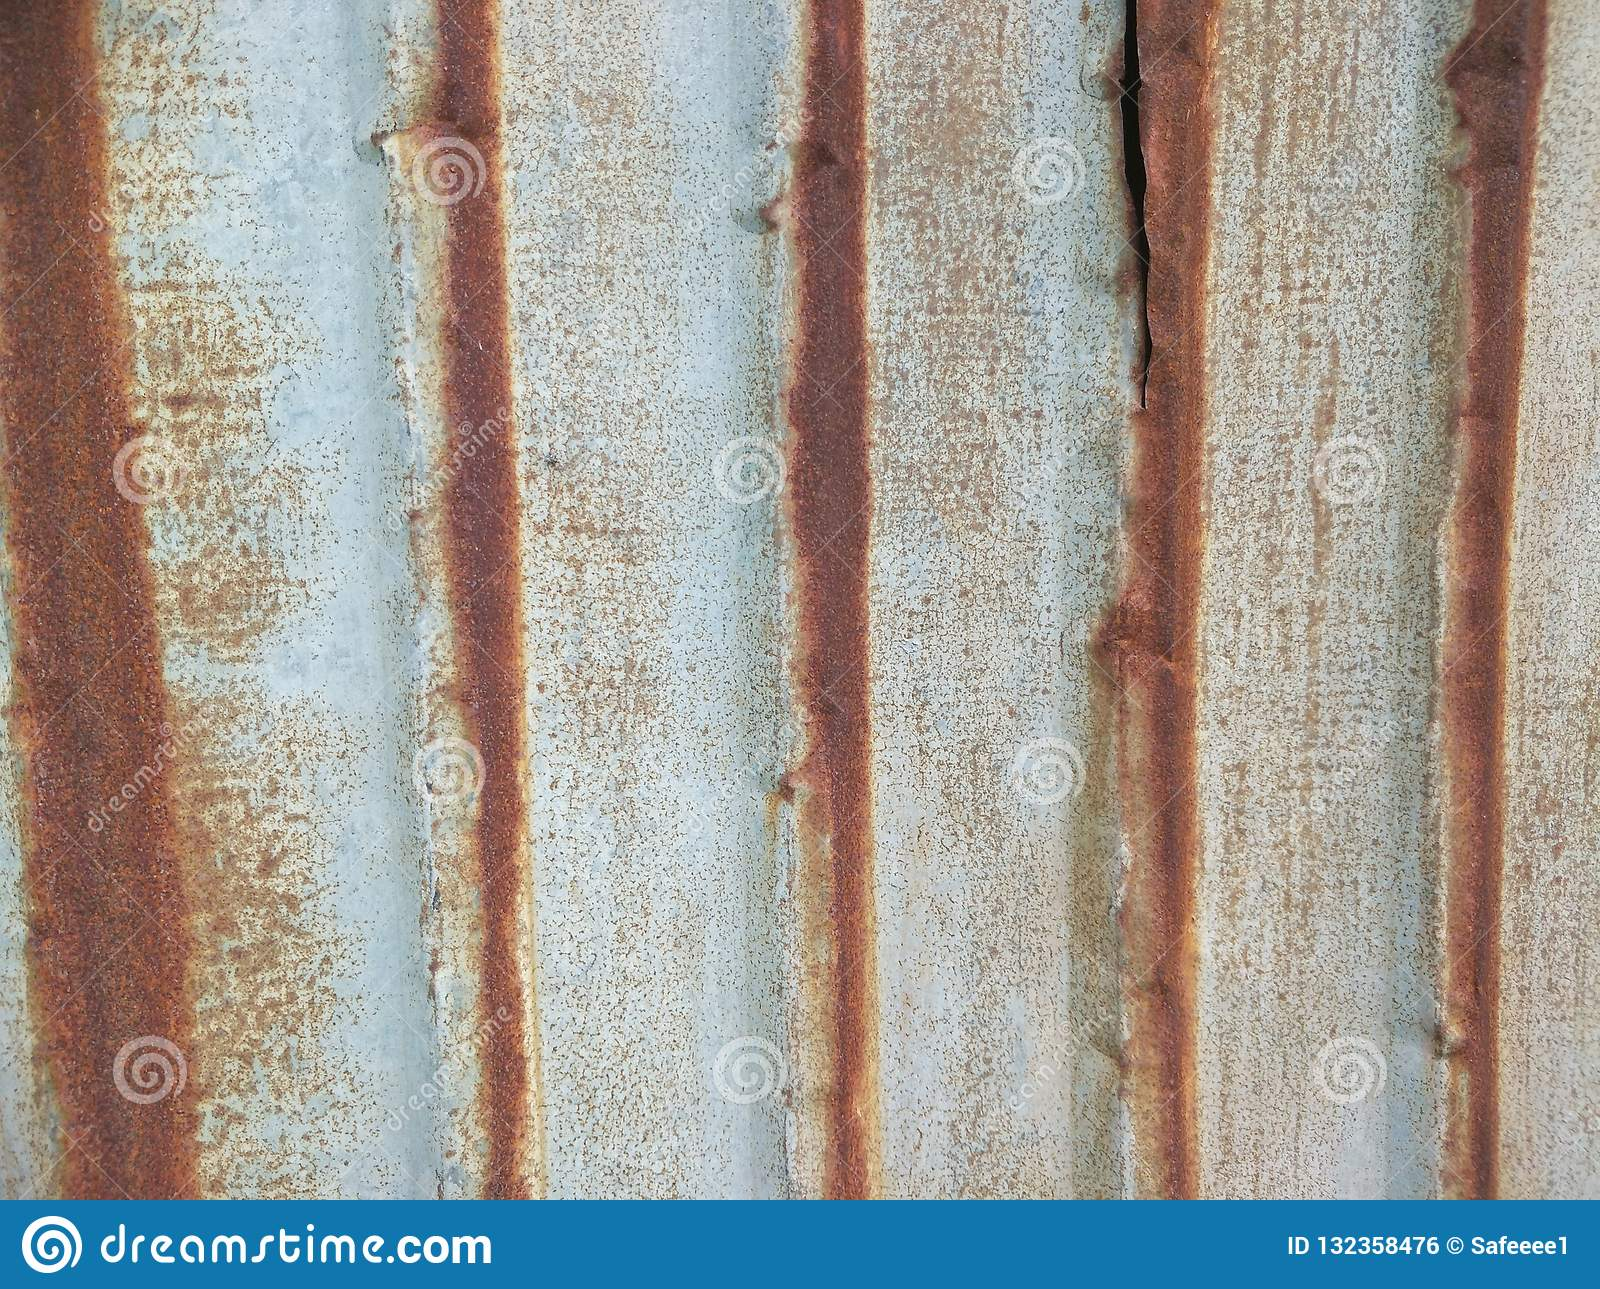 Rust on the wall stock photo  Image of iron, usually - 132358476